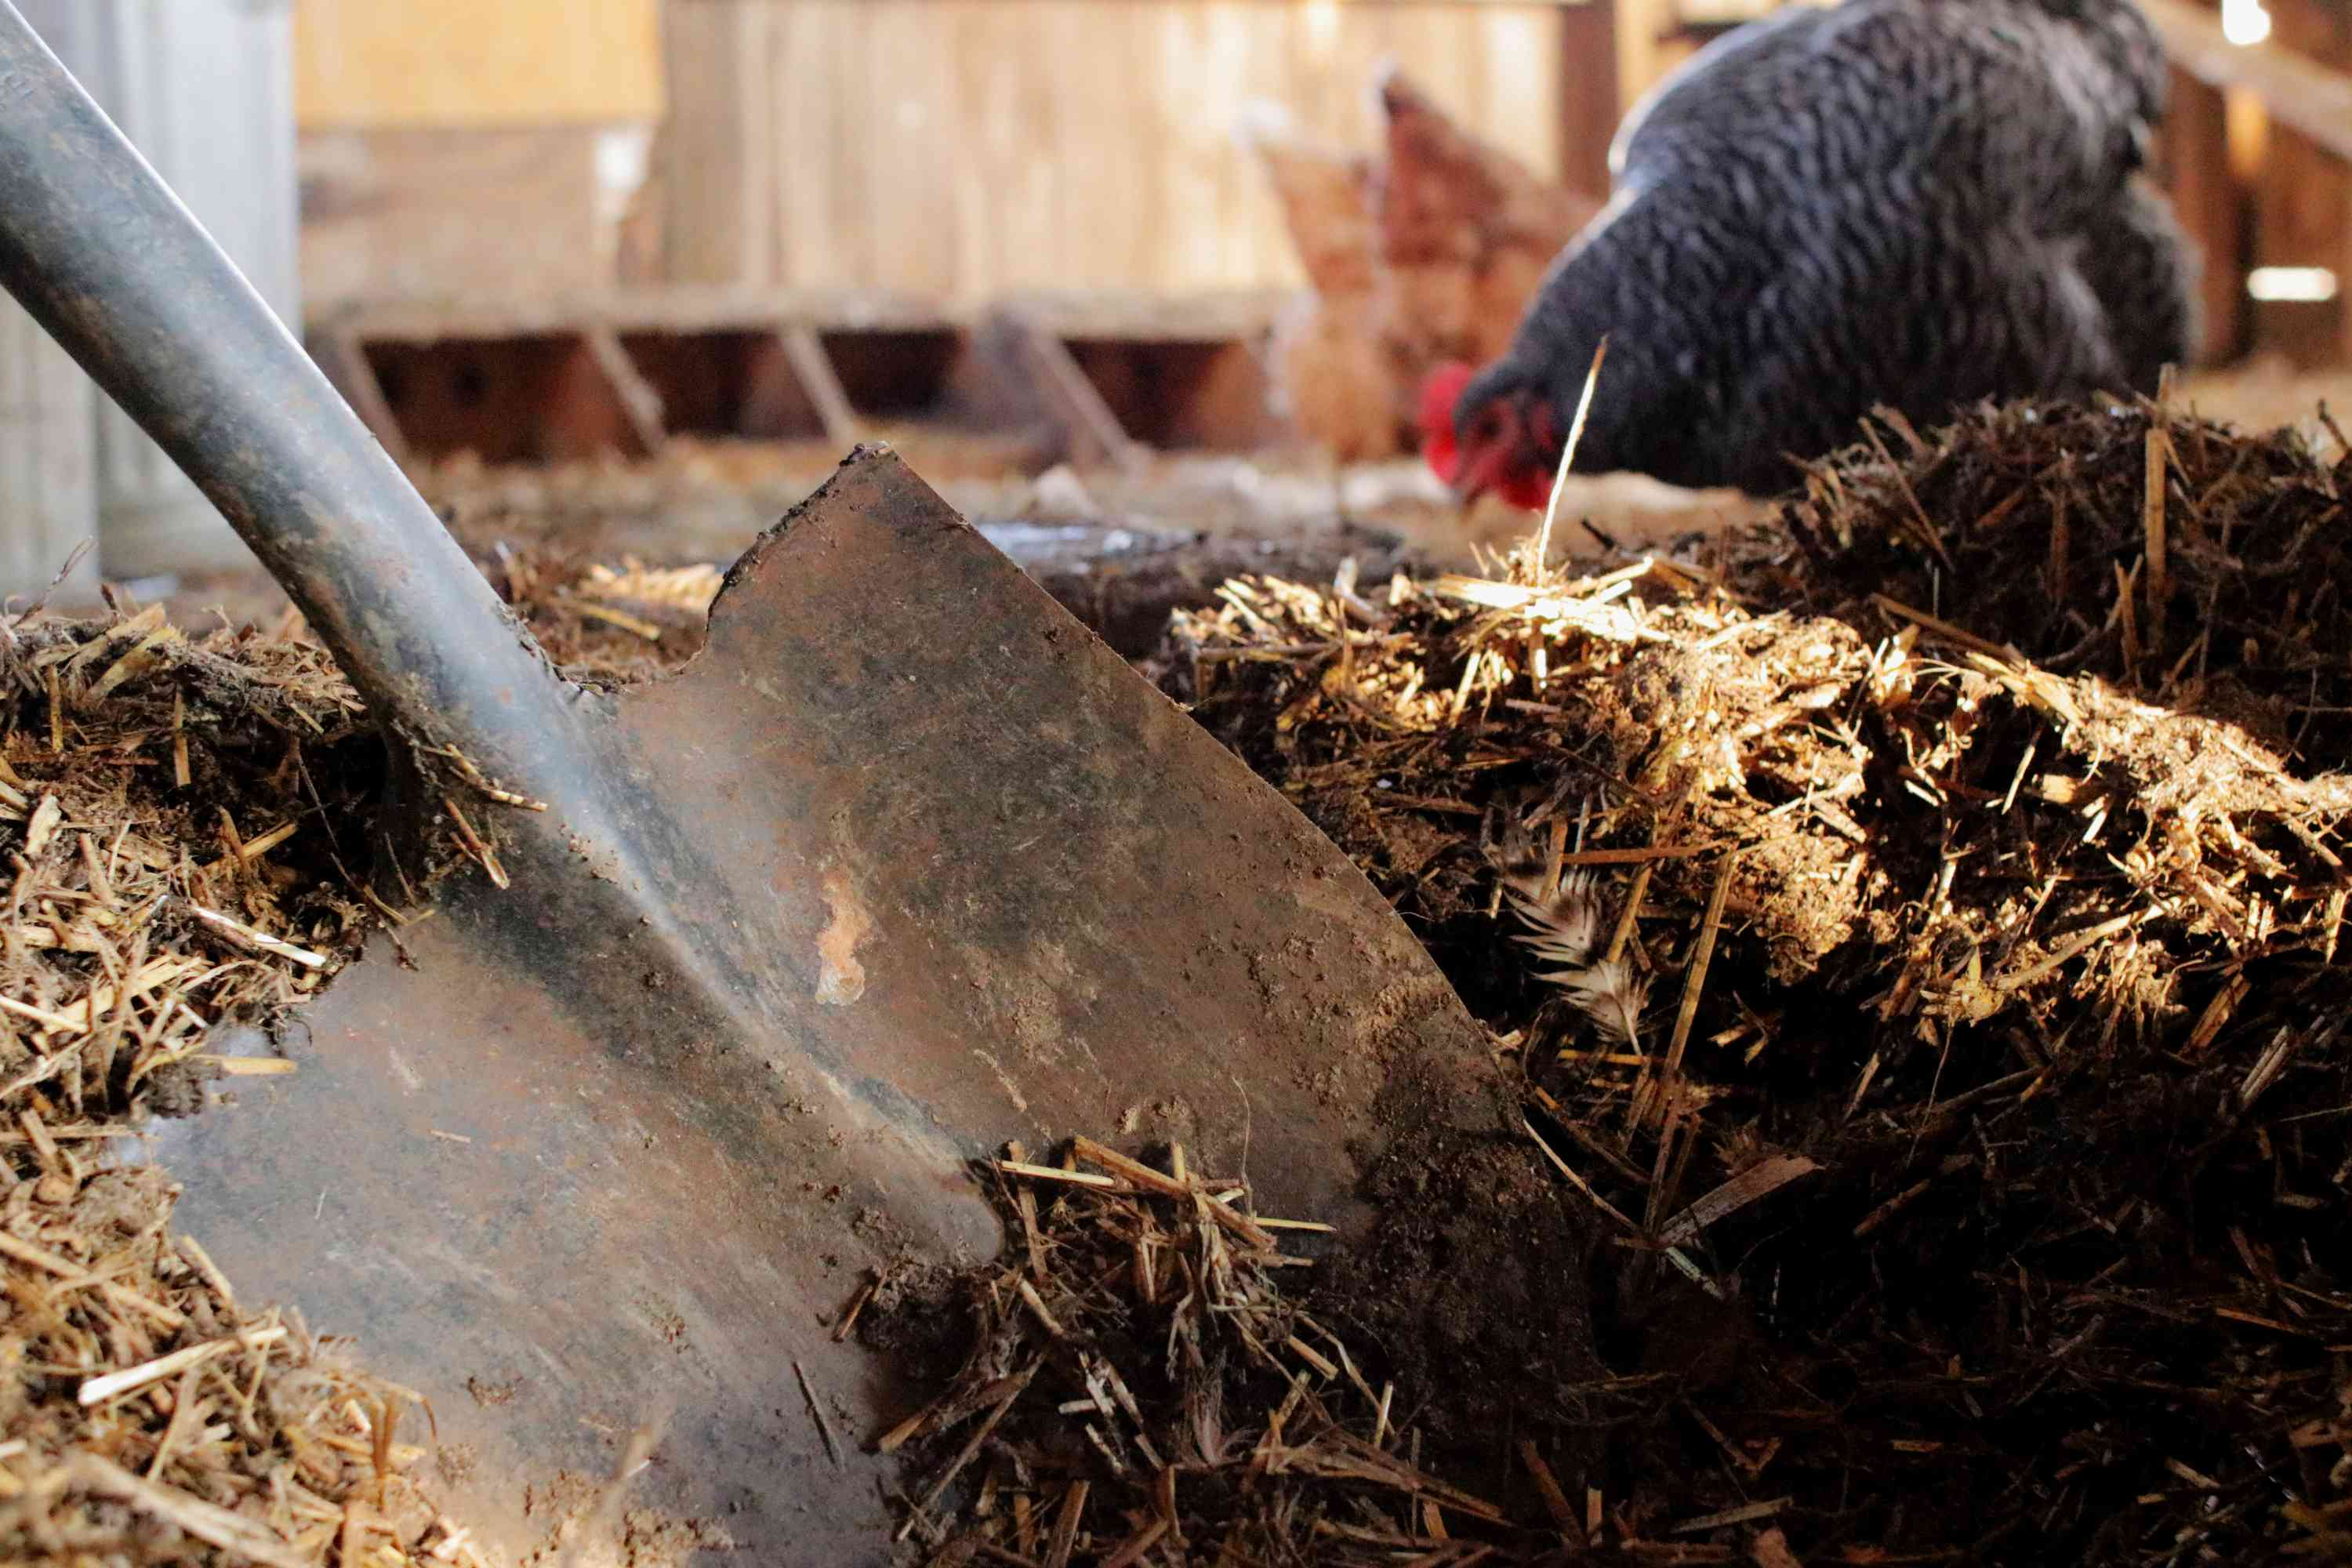 deep-cleaning the coop